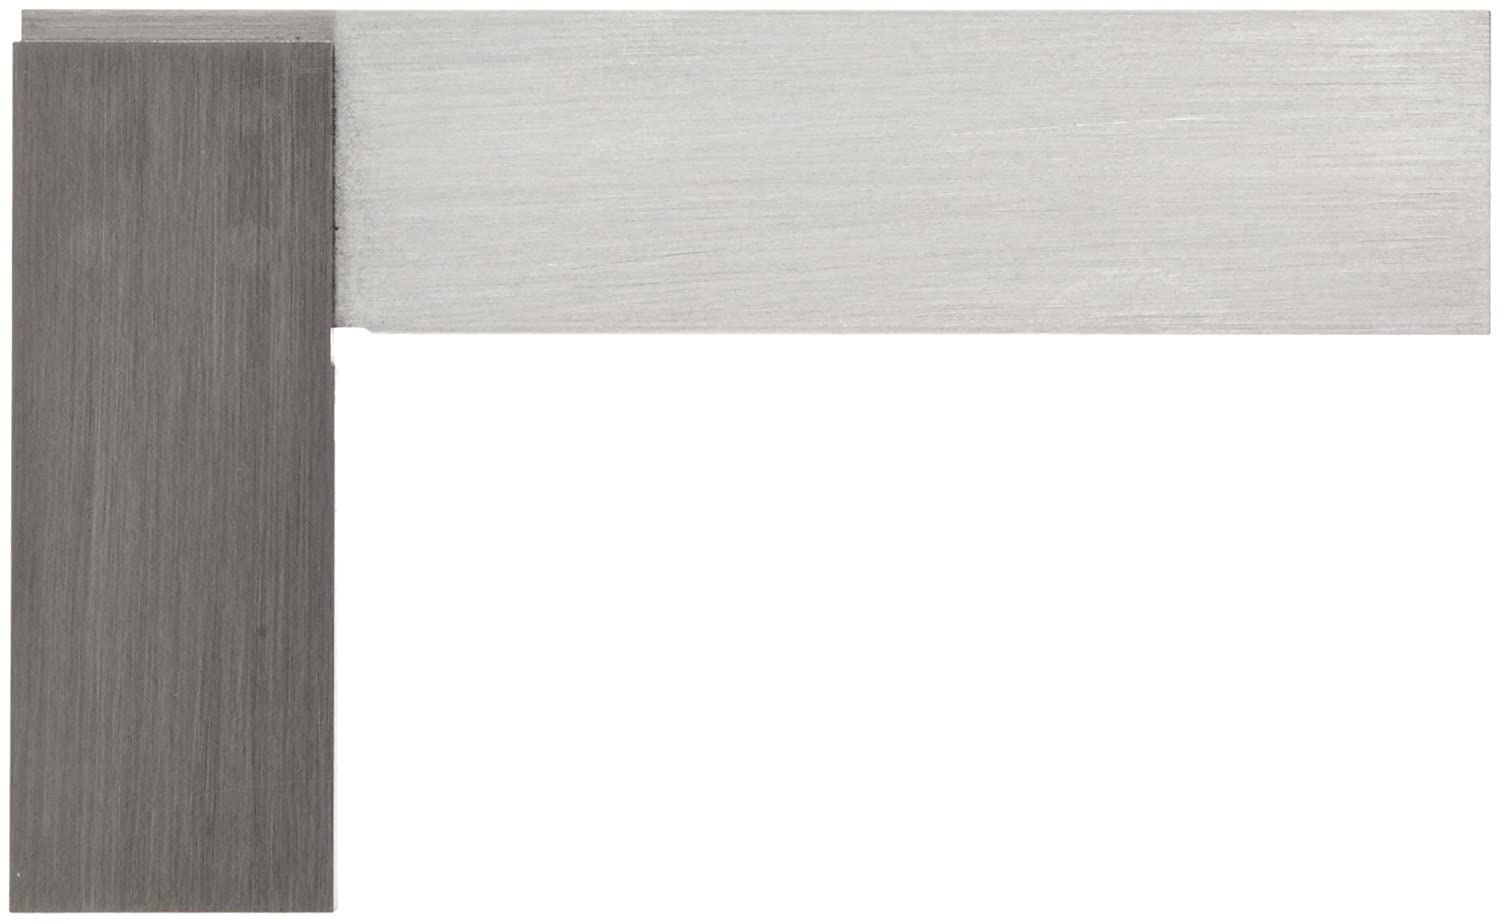 STARRETT 3020-4 Precision Square,Stainless Steel